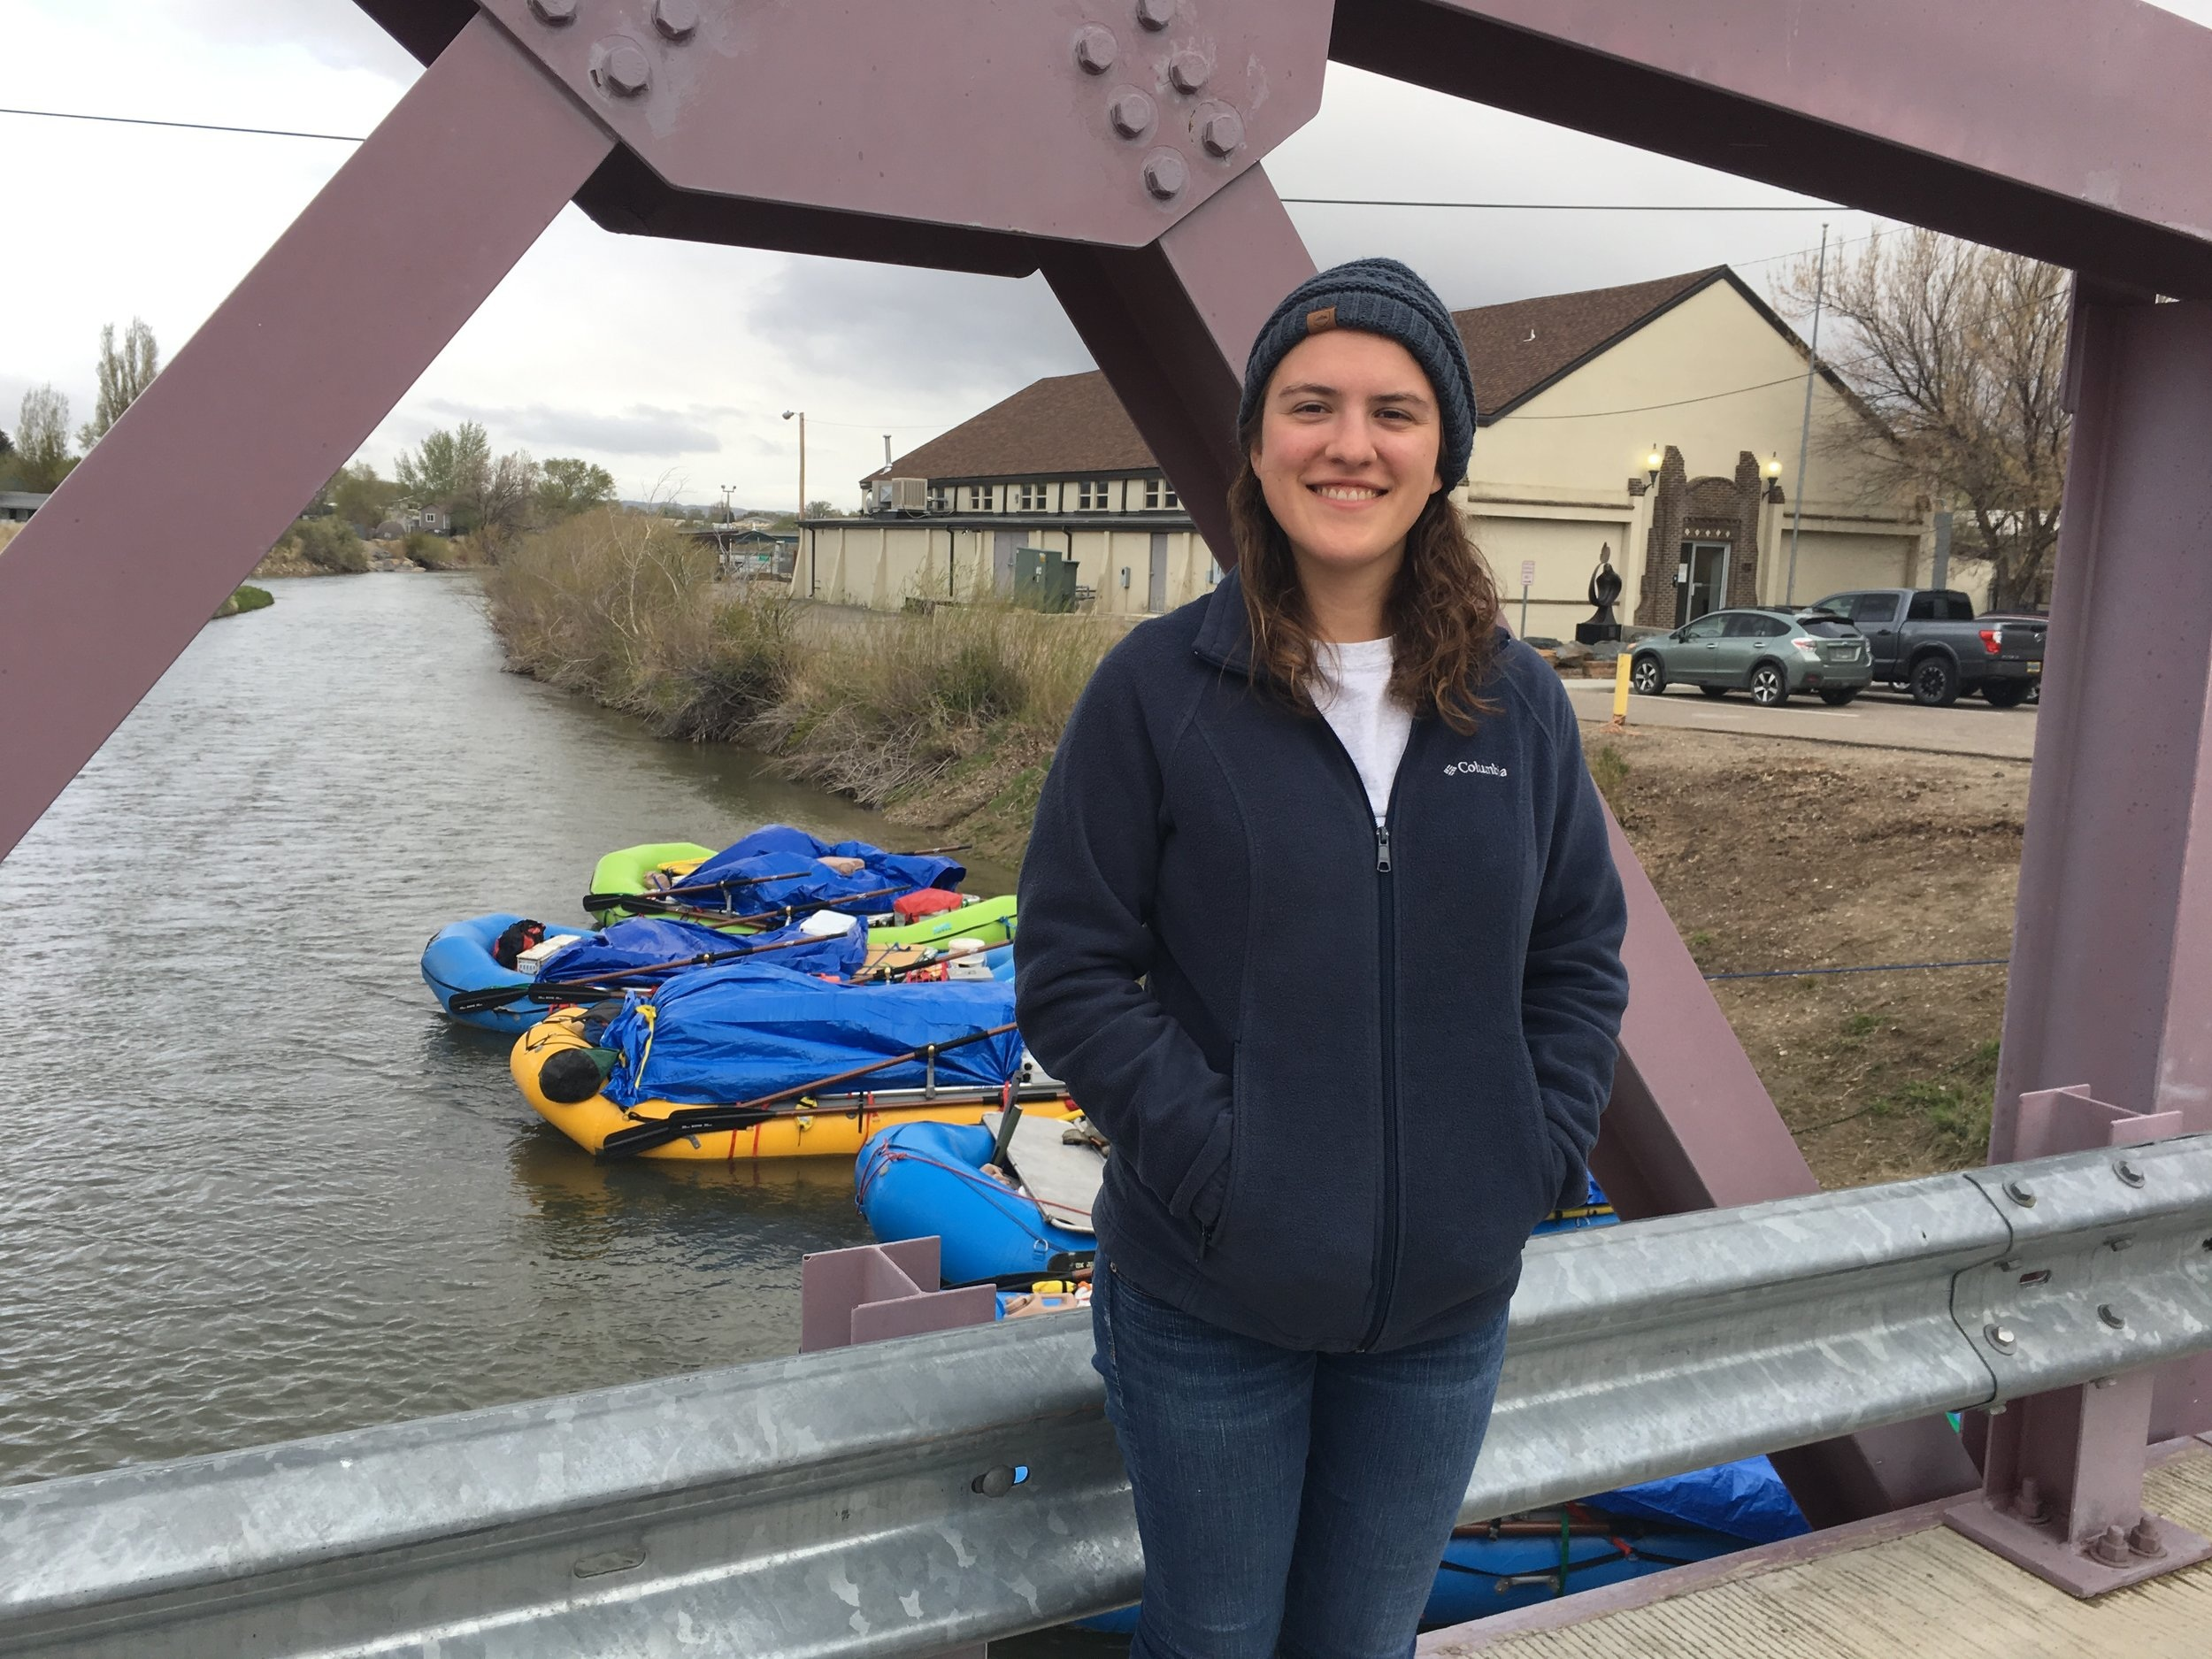 Janis LeMaster over the Green River near Expedition Island, May 23, 2019